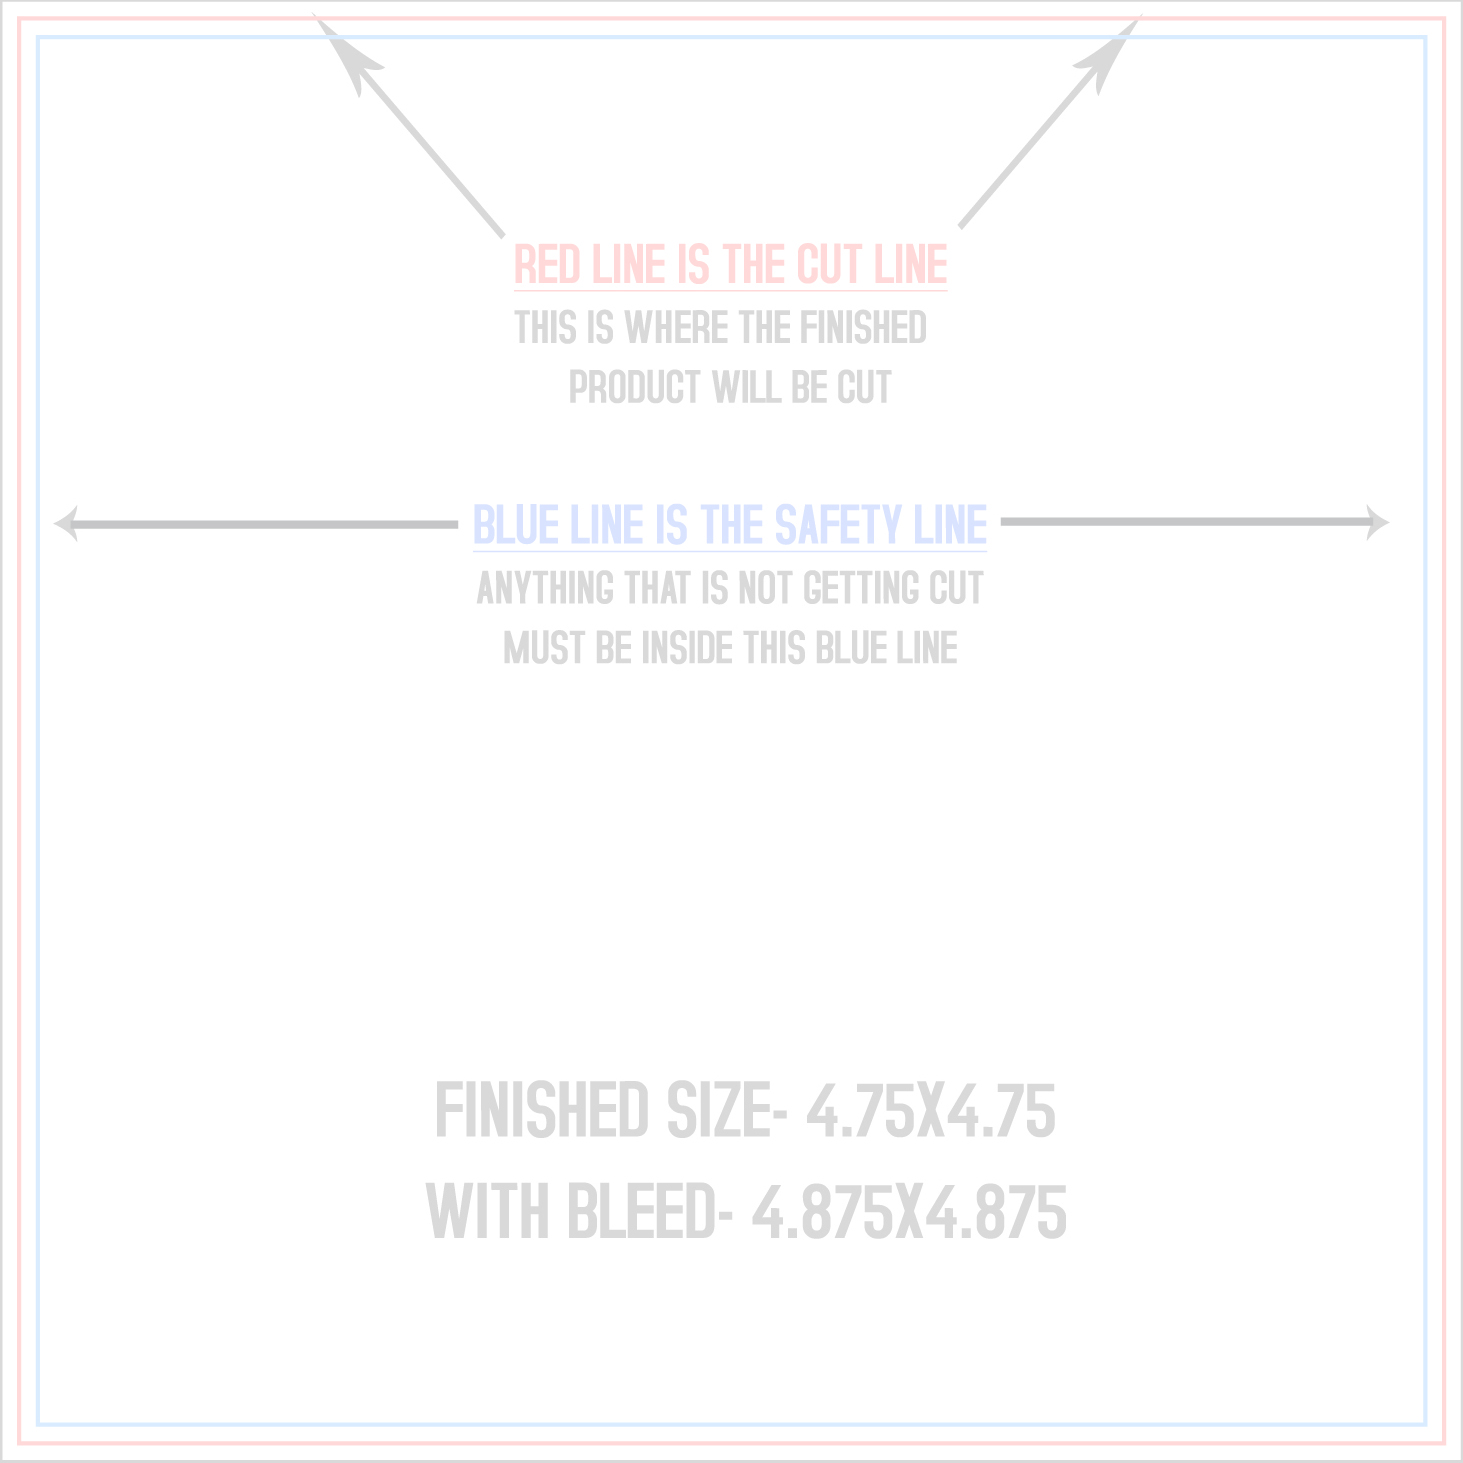 4 over certified cd templates for Cd inlay template